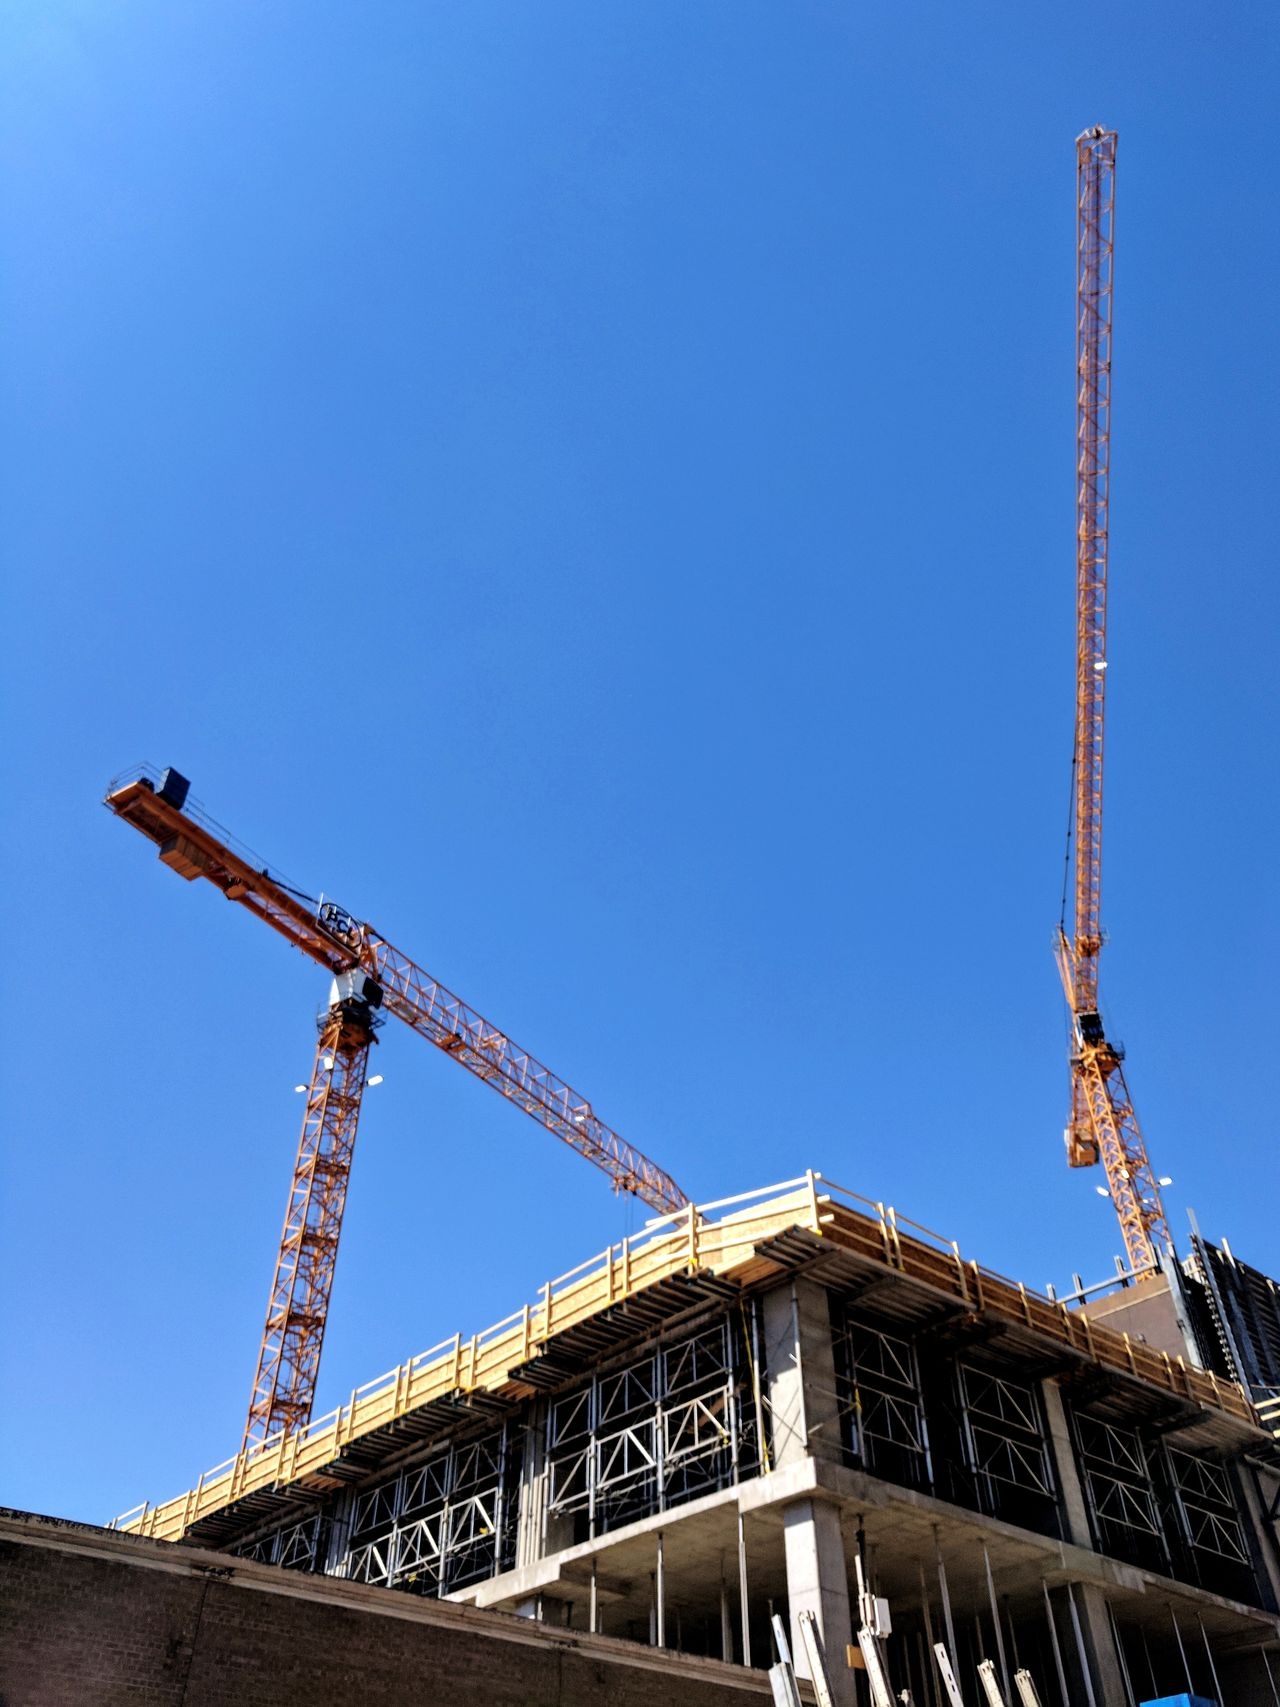 Built Structure Architecture Low Angle View No People Day Outdoors Clear Sky Sky City Construction Crane Construction Machinery Construction Site Construction Building Exterior Clear Sky Low Angle View Blue Architecture Google Pixel XL